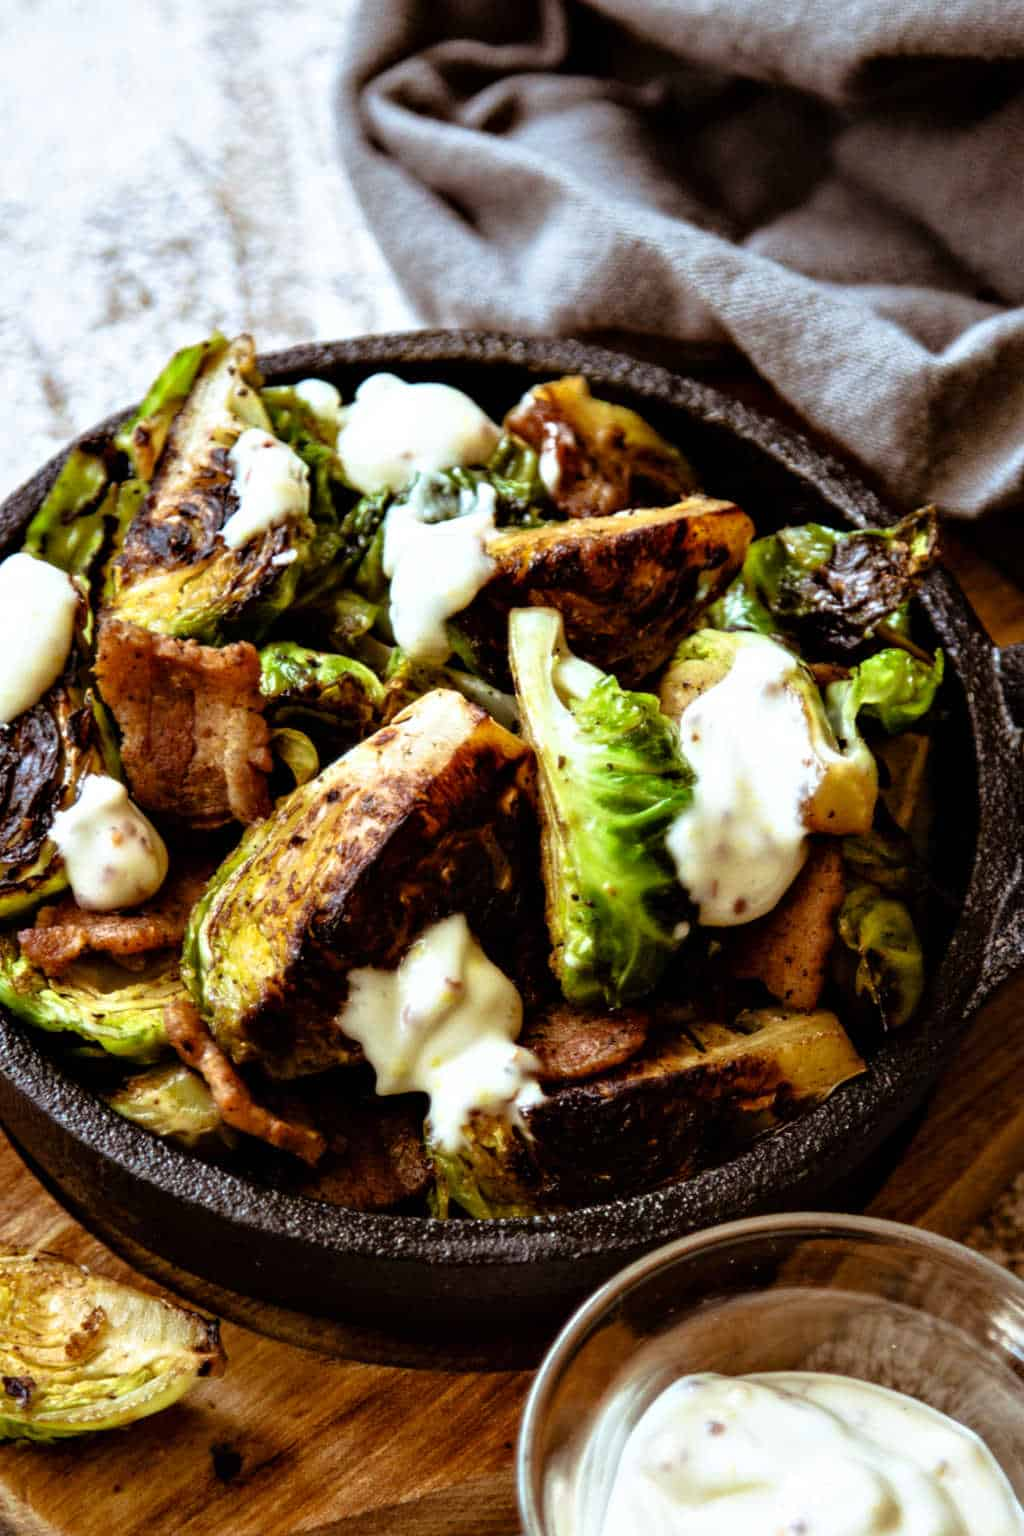 charred brussel sprouts drizzled with garlic aioli in a appetizer size cast iron skillet on a wooden board